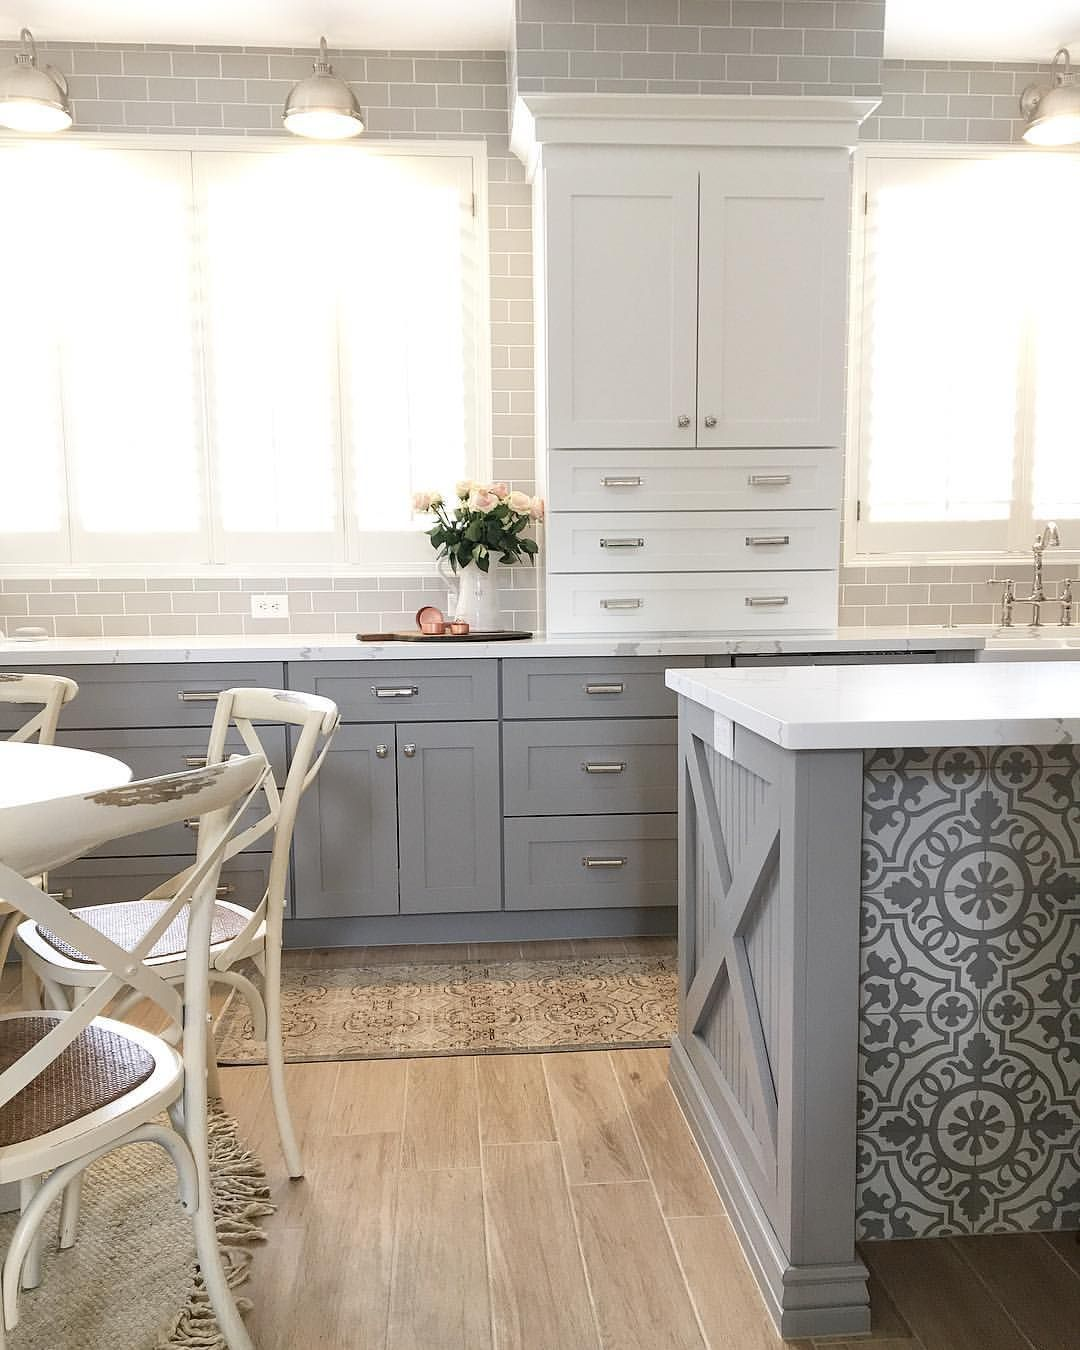 Good Morning Little Peek A Boo At Our Tiled Island This Damsel Cement Tile From Bedrosi Kitchen Design Kitchen Island Back Panels Kitchen Inspirations